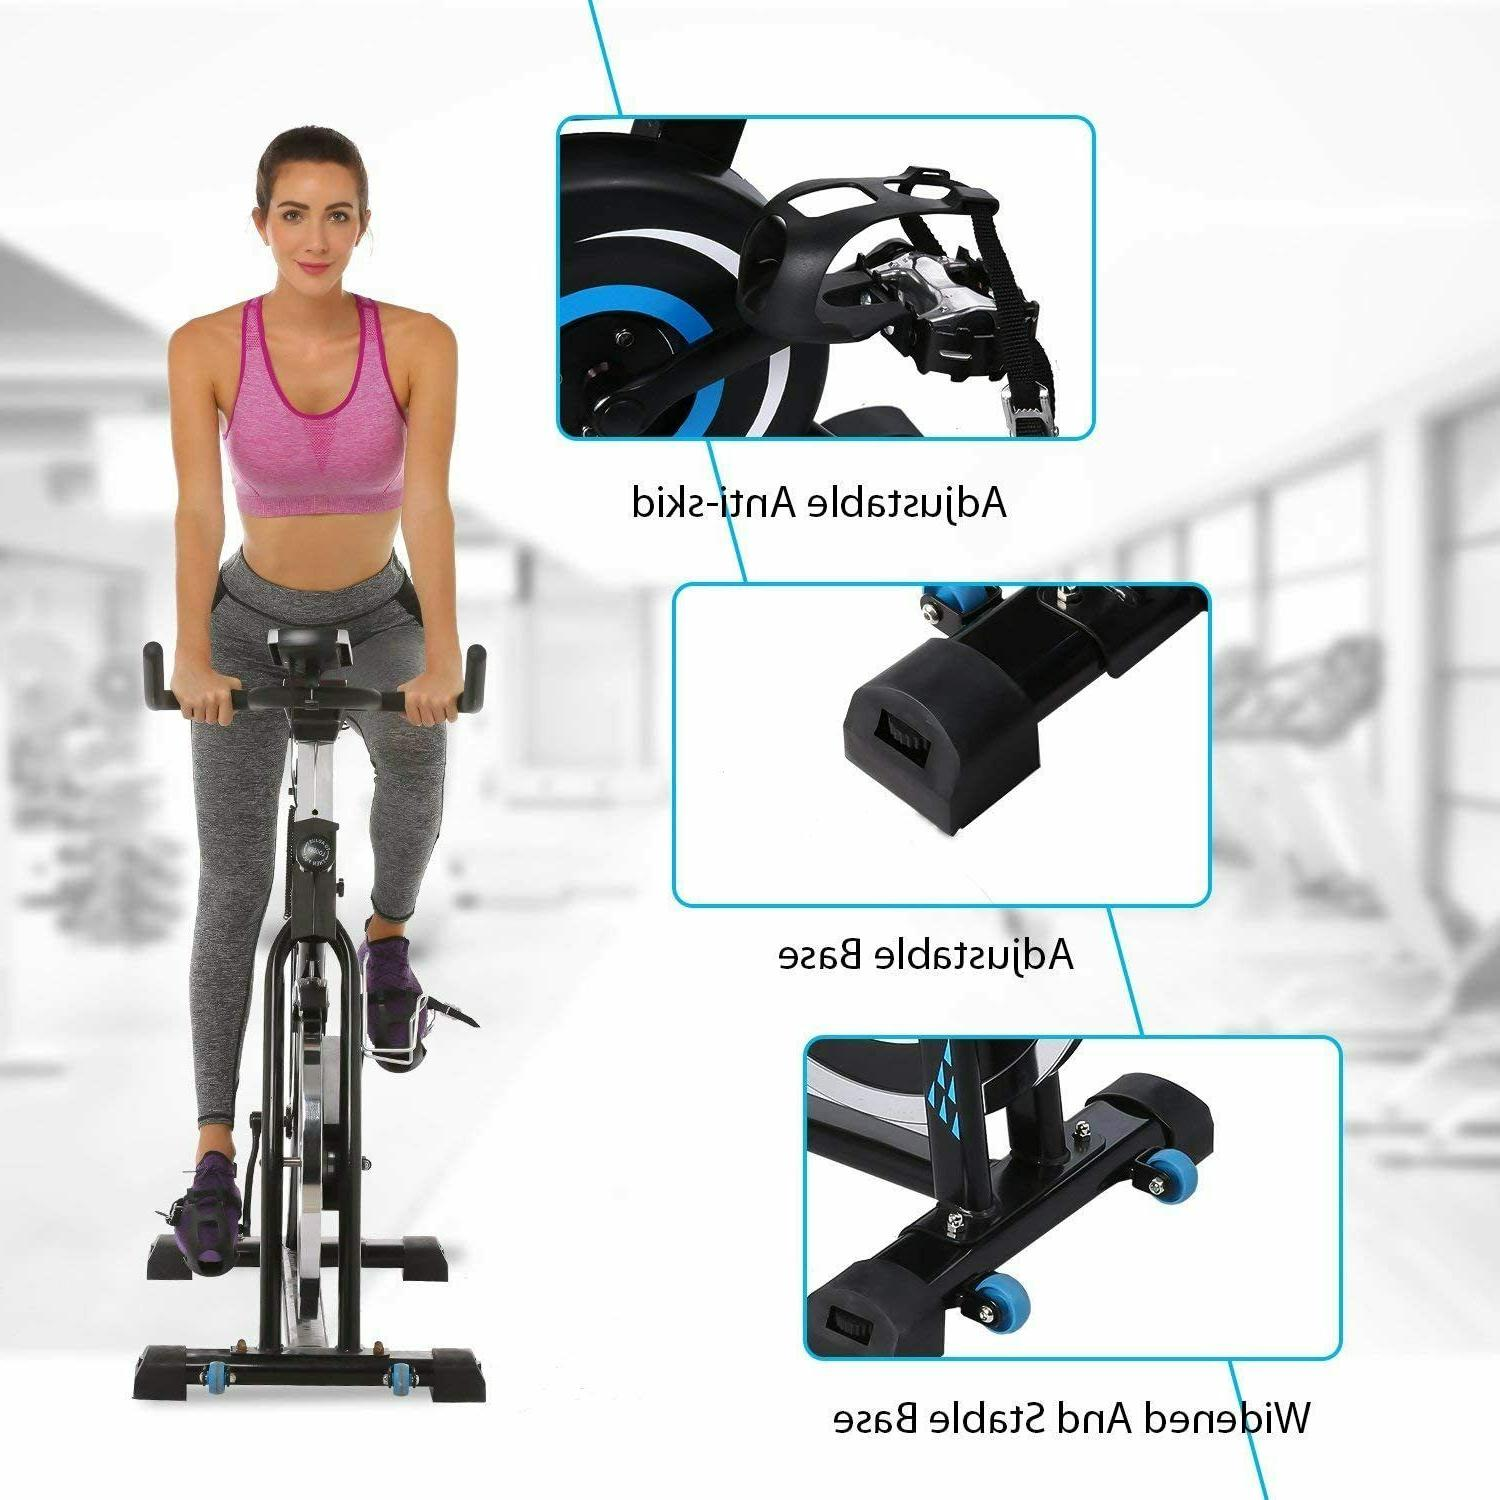 ANCHEER Stationary Exercise Bike, Indoor Cycling Drive Monitor